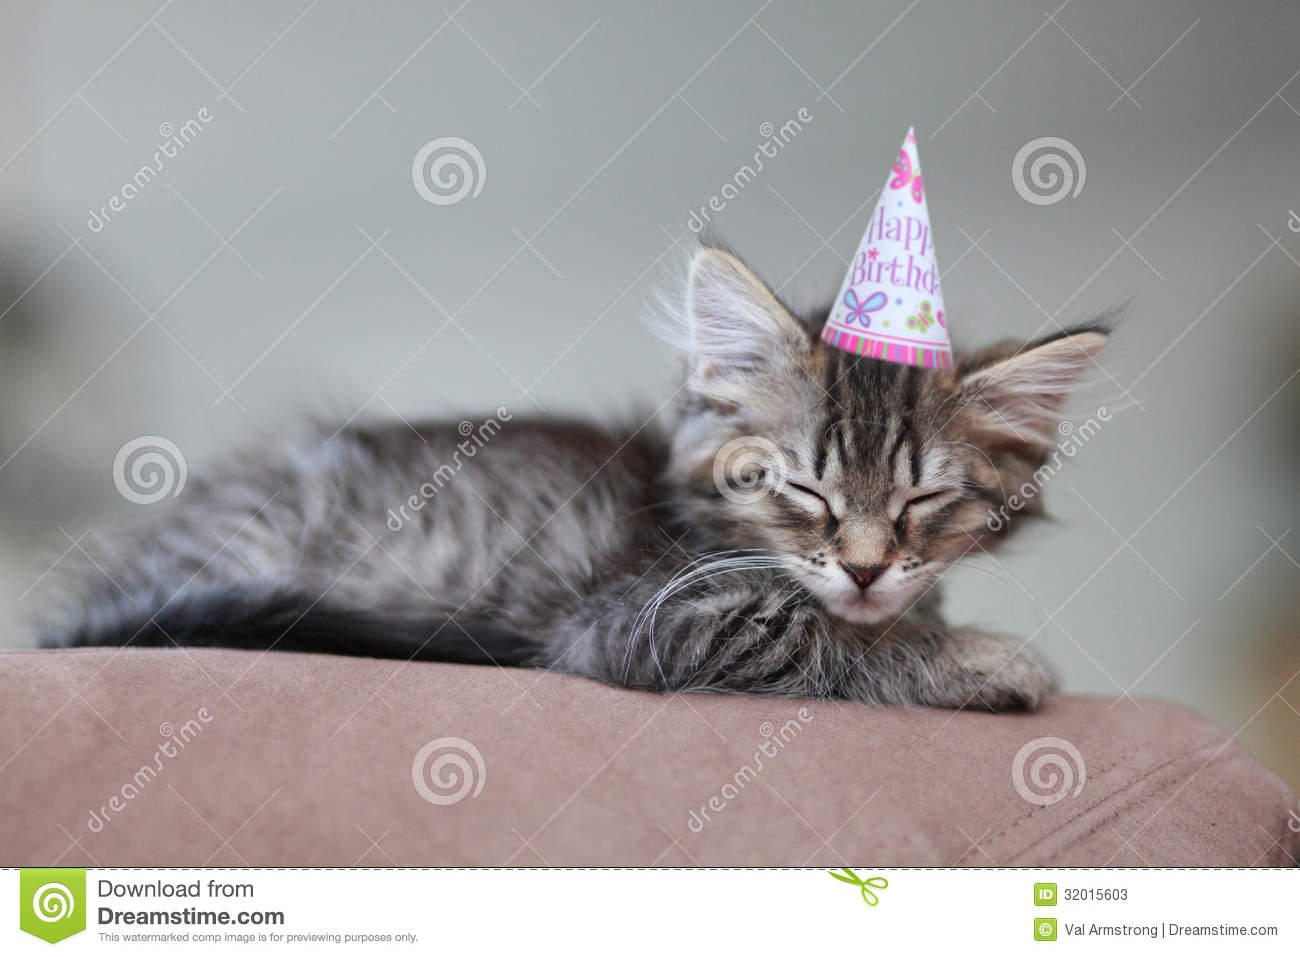 Cute Tired Kitten Wearing A Birthday Party Hat Taking Nap After Little Girls